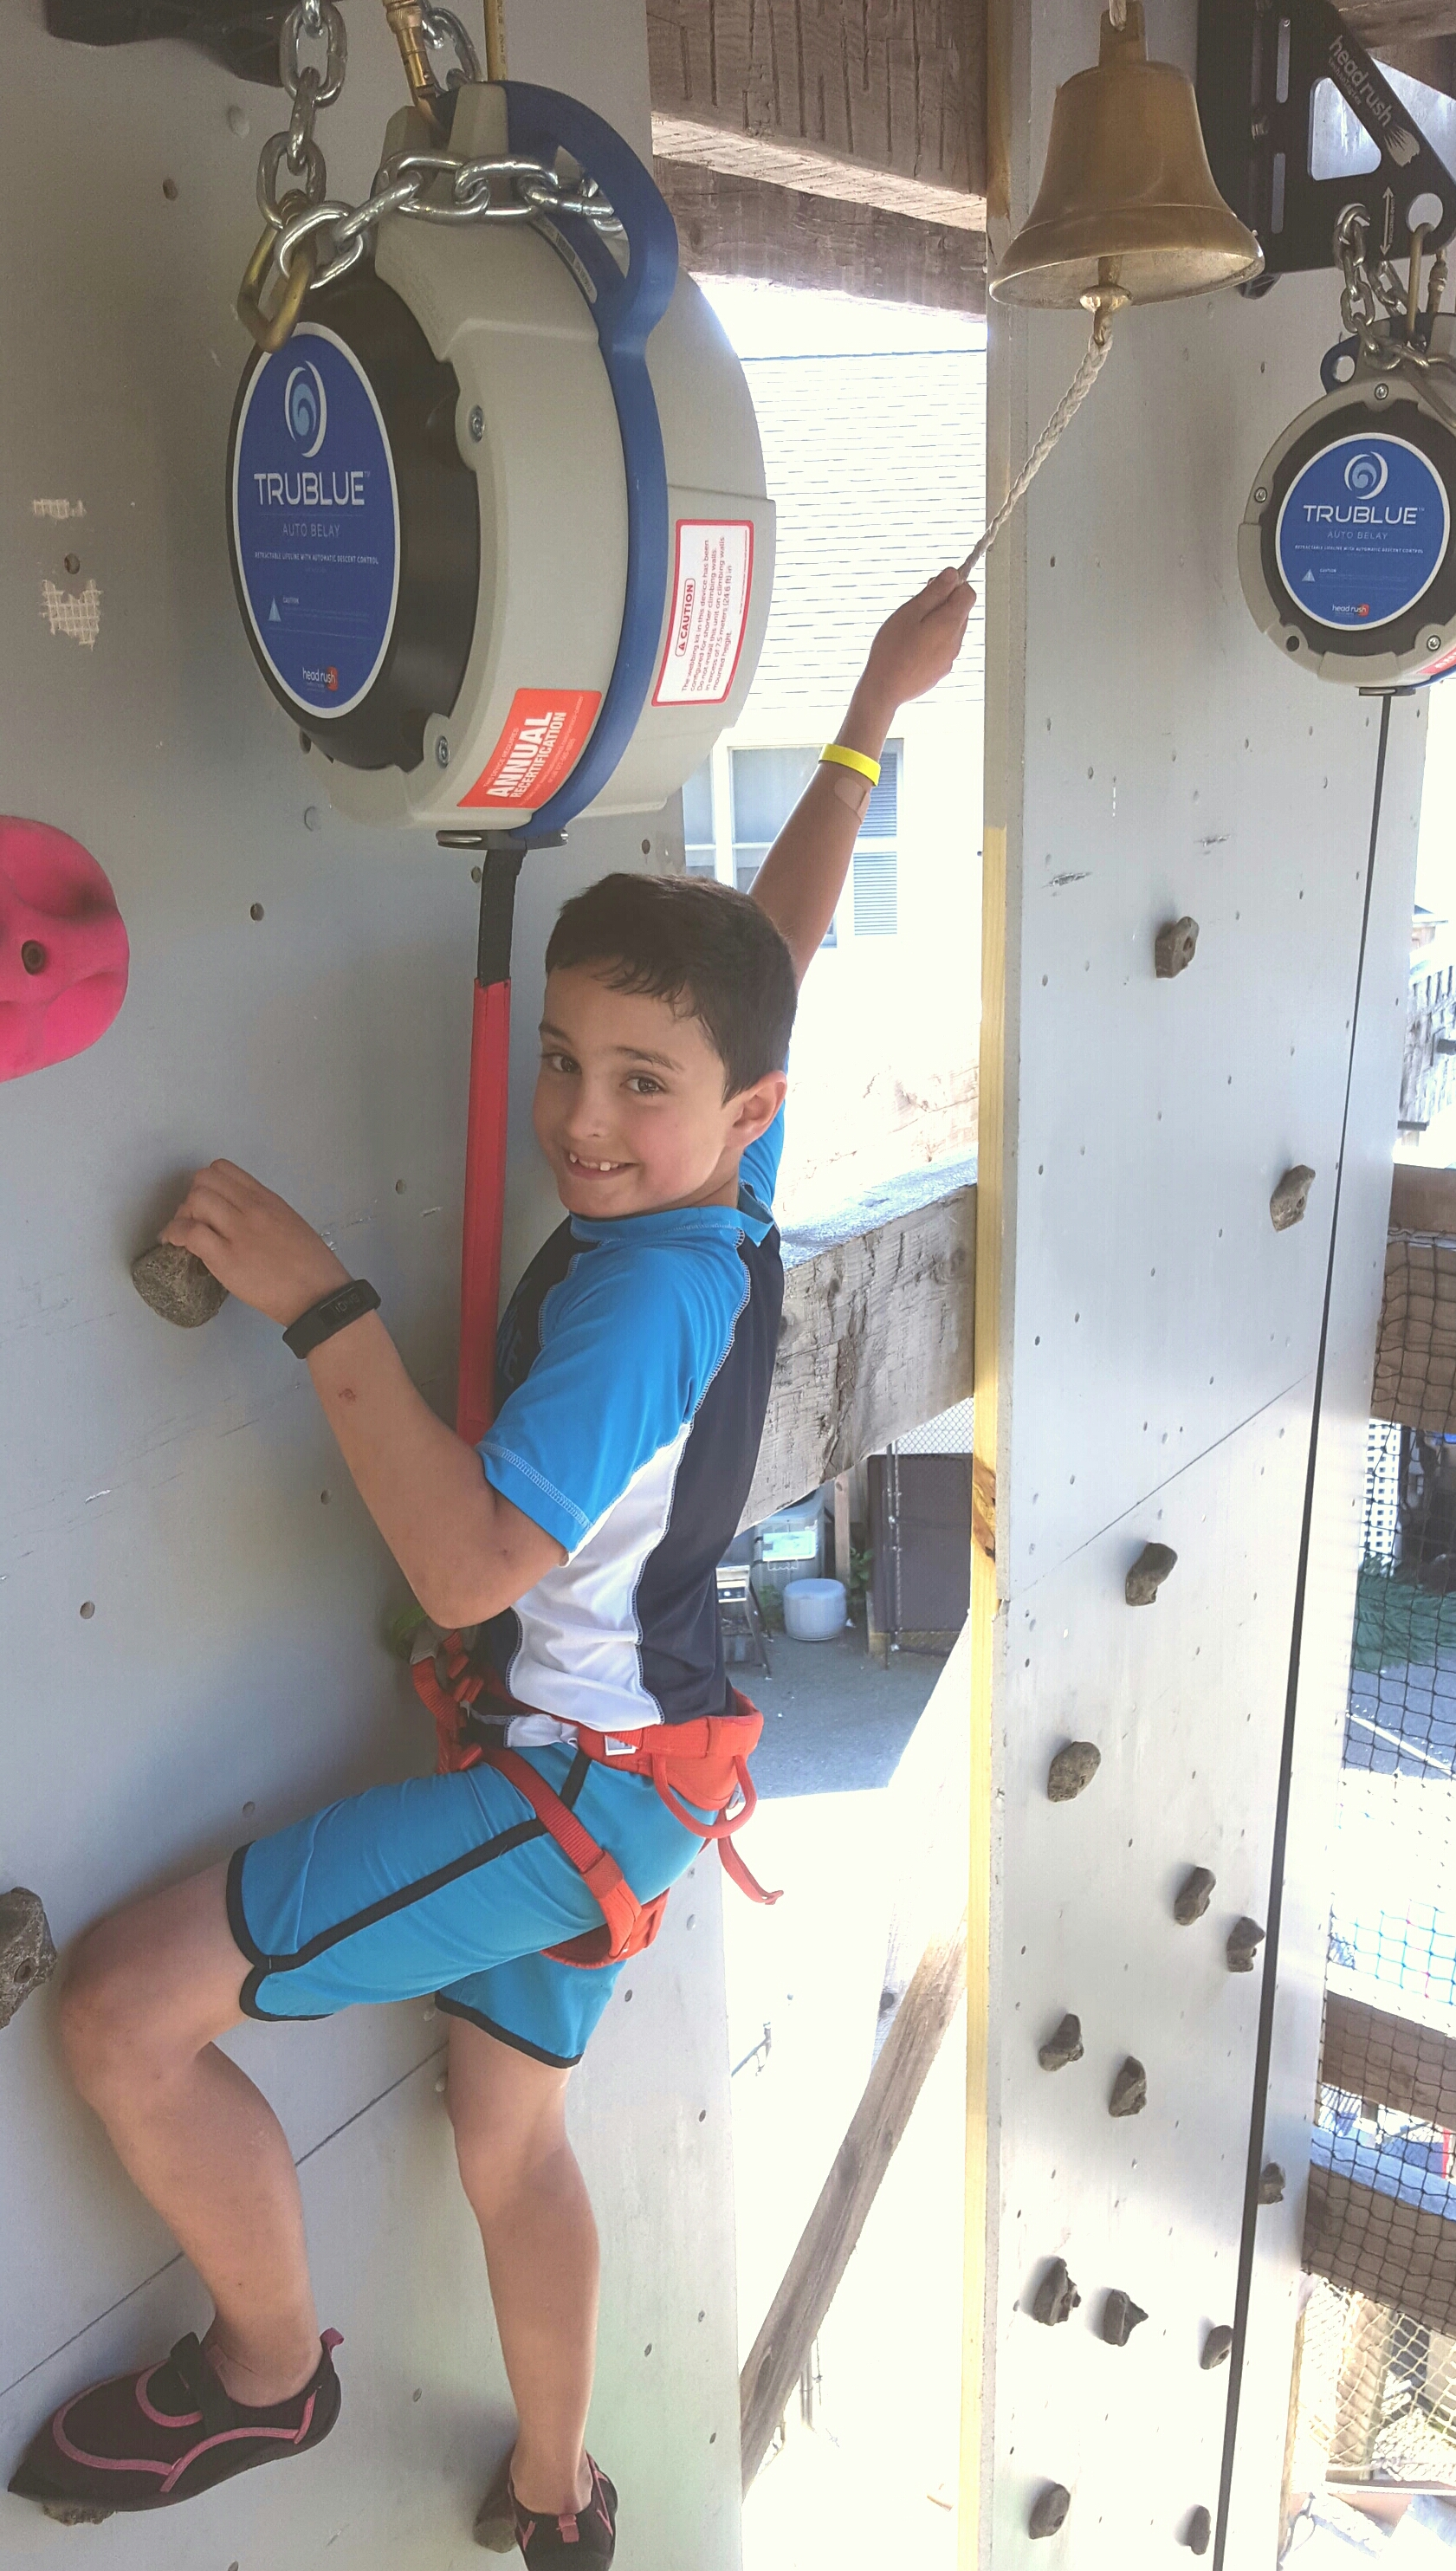 Rock Wall of fun! Ring the bell and win a free Batting Token!